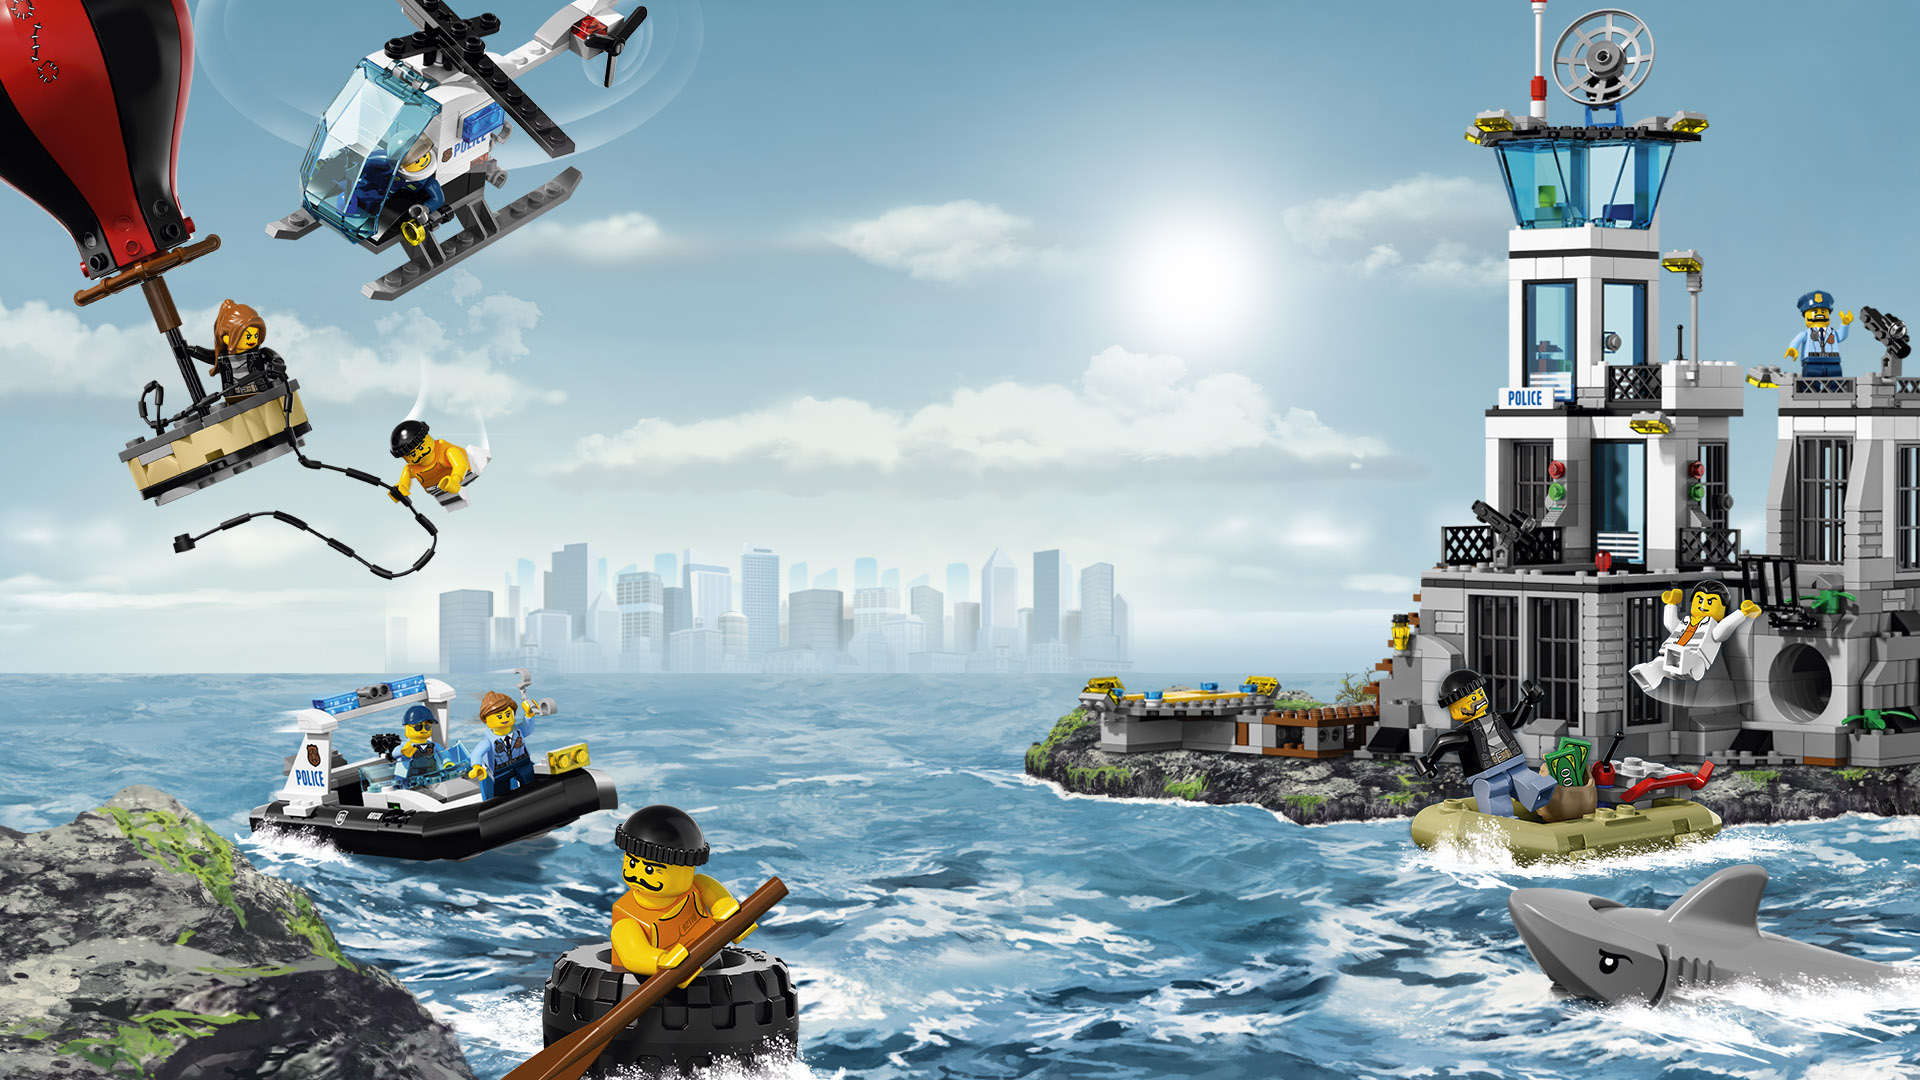 12 Cool Lego Virtual backgrounds for Zoom, Microsoft Teams ...